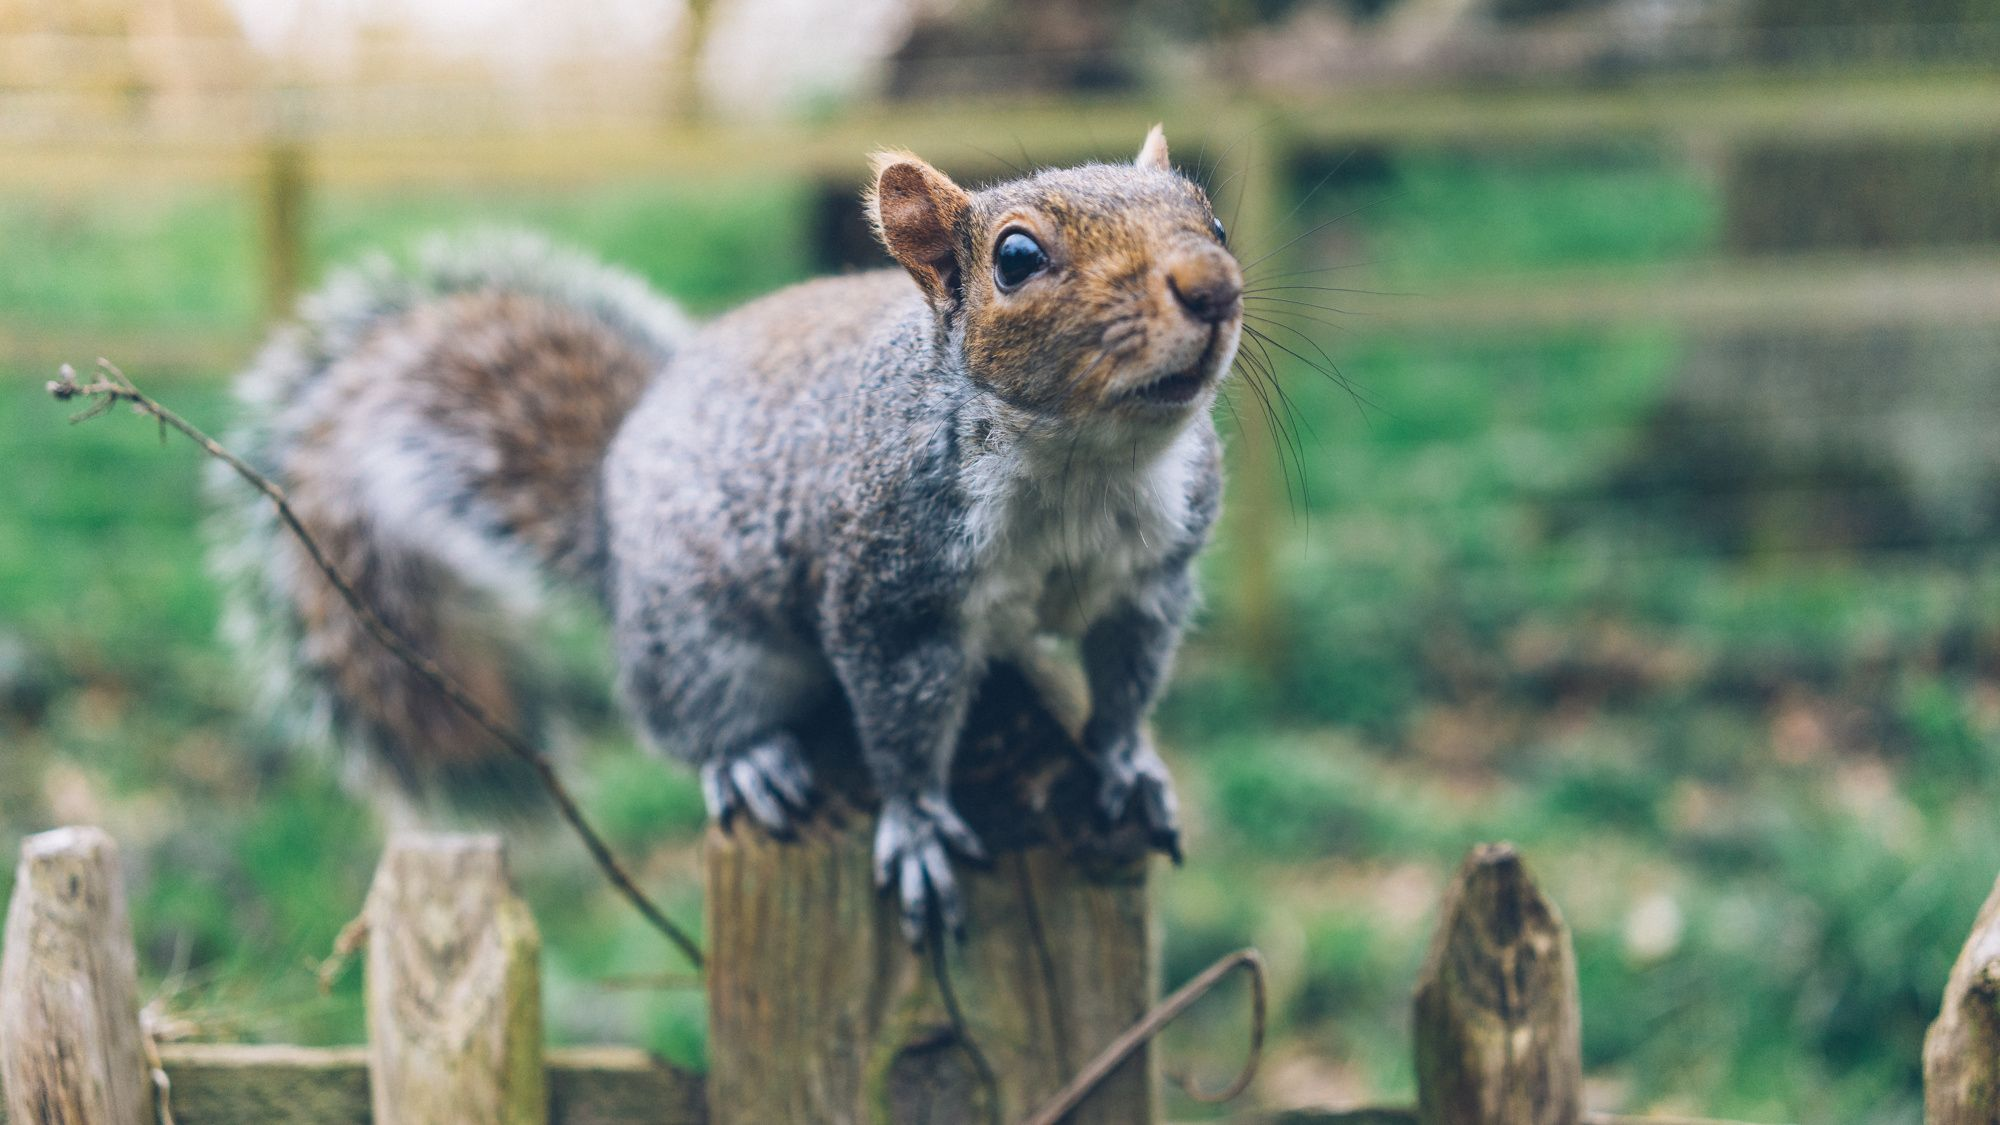 Photograph Grey Squirrel, Holland Park by Tiago Higgs on 500px